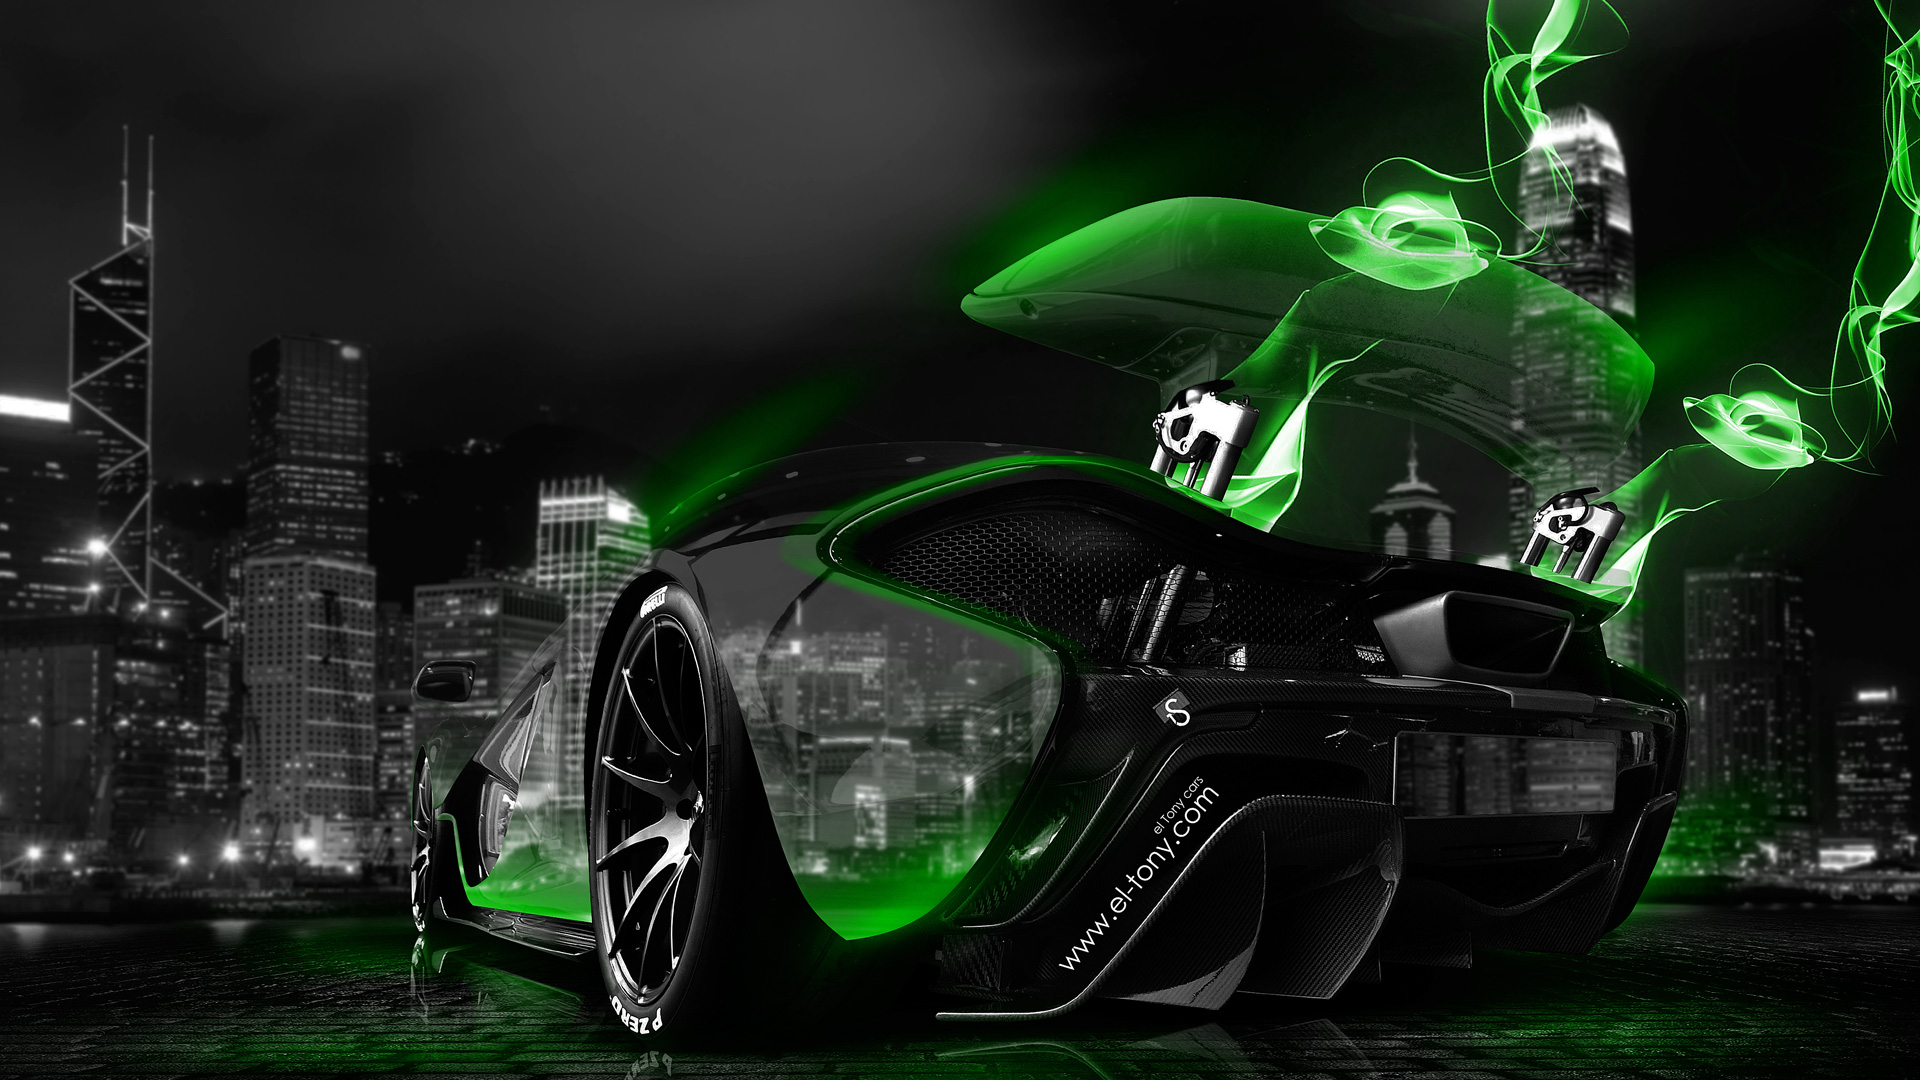 Mclaren P1 Neon Energy Crystal City Car 2014 El Tony